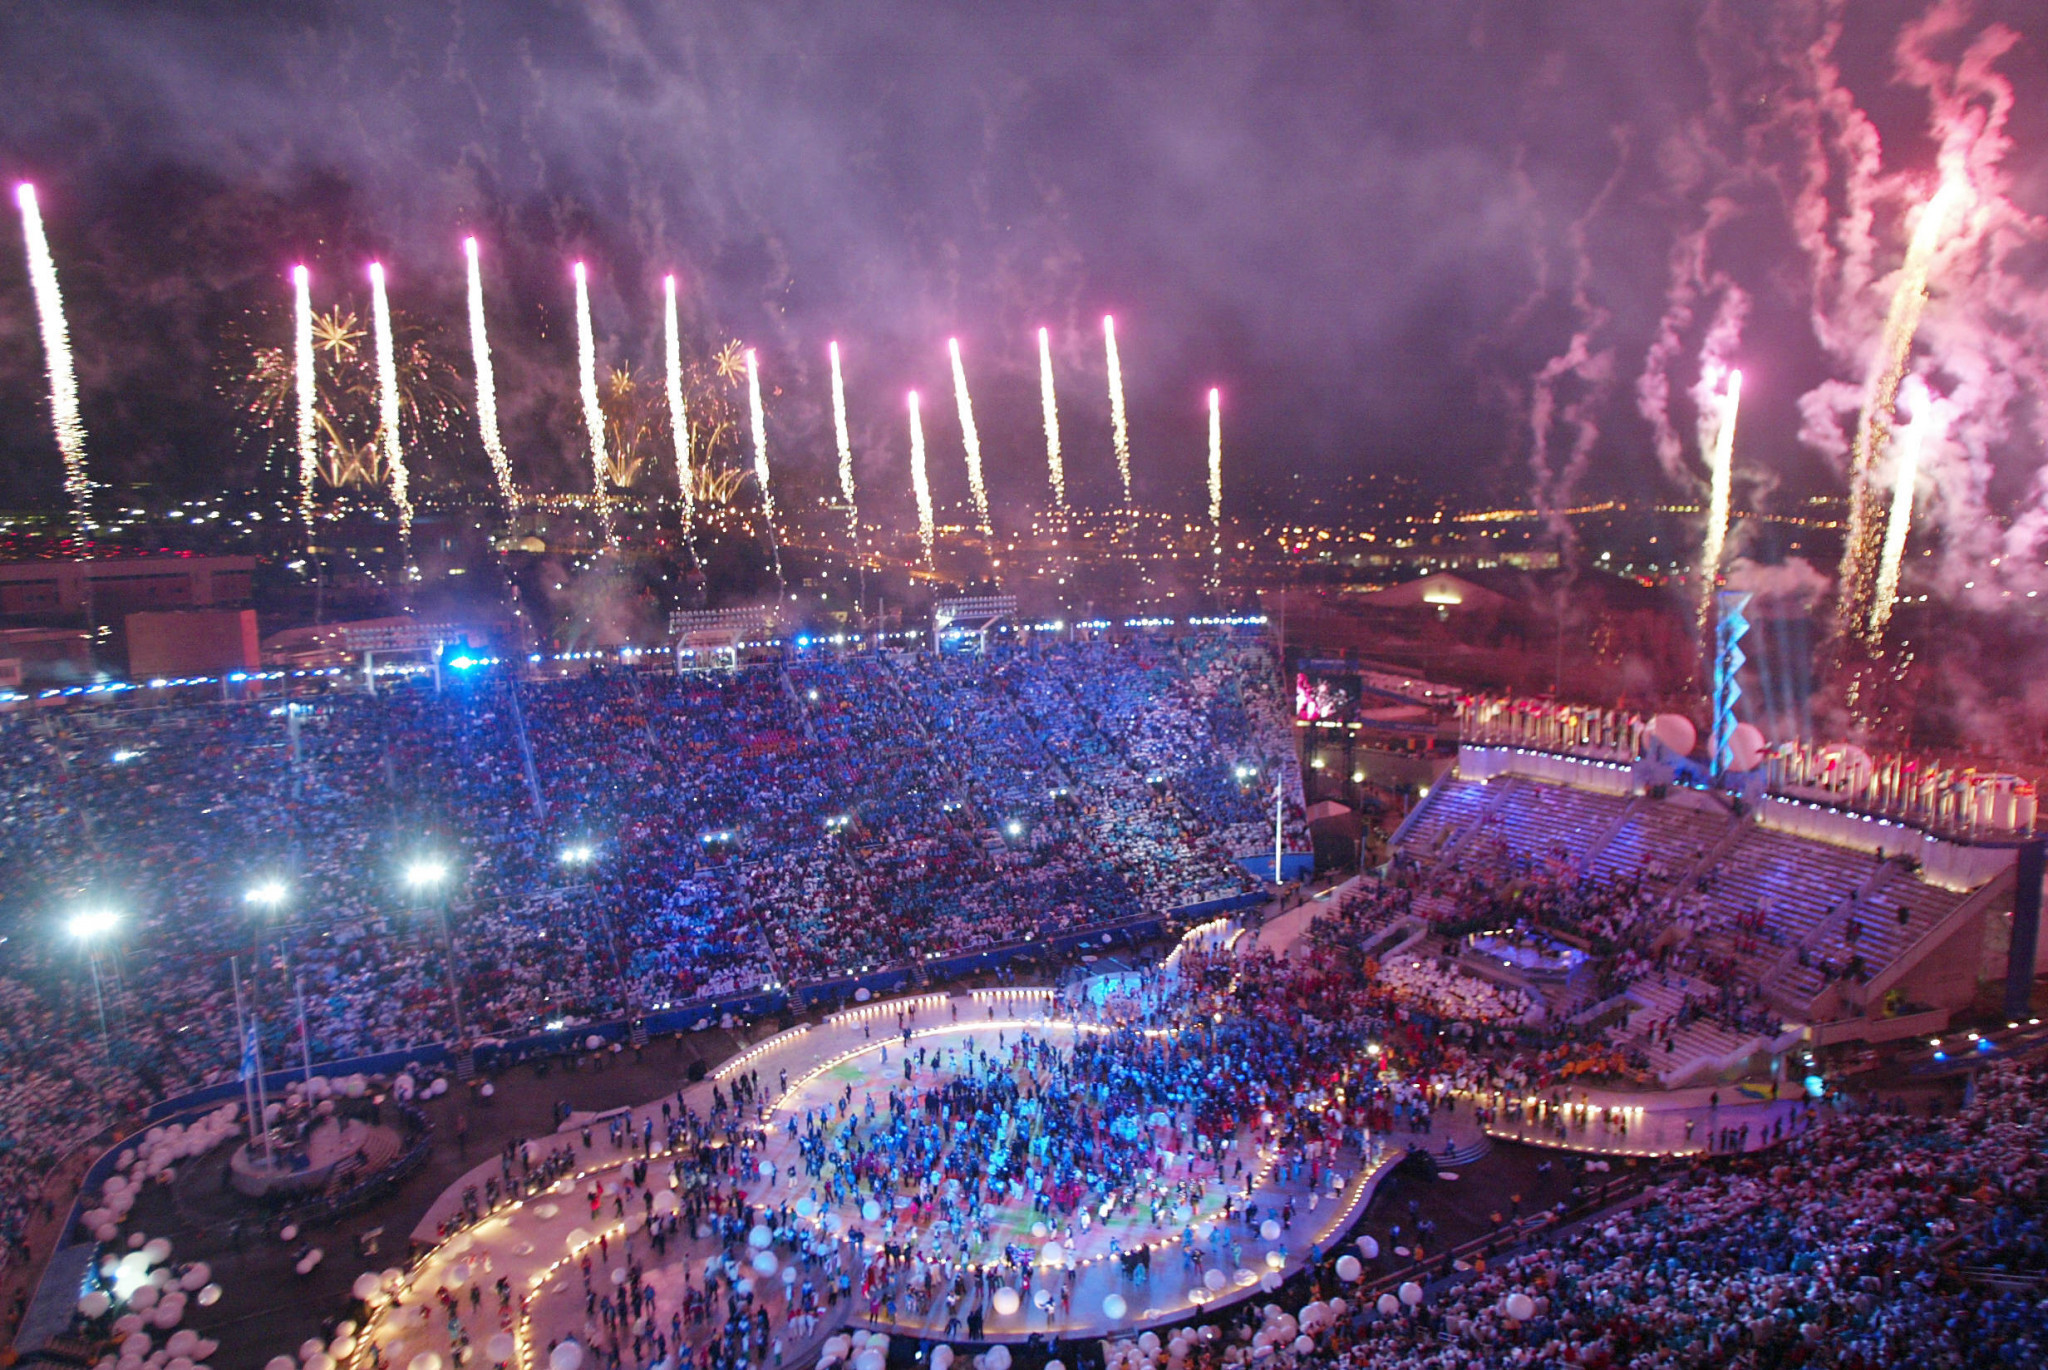 IOC enters into continuous dialogue with Salt Lake City about hosting Winter Olympic Games